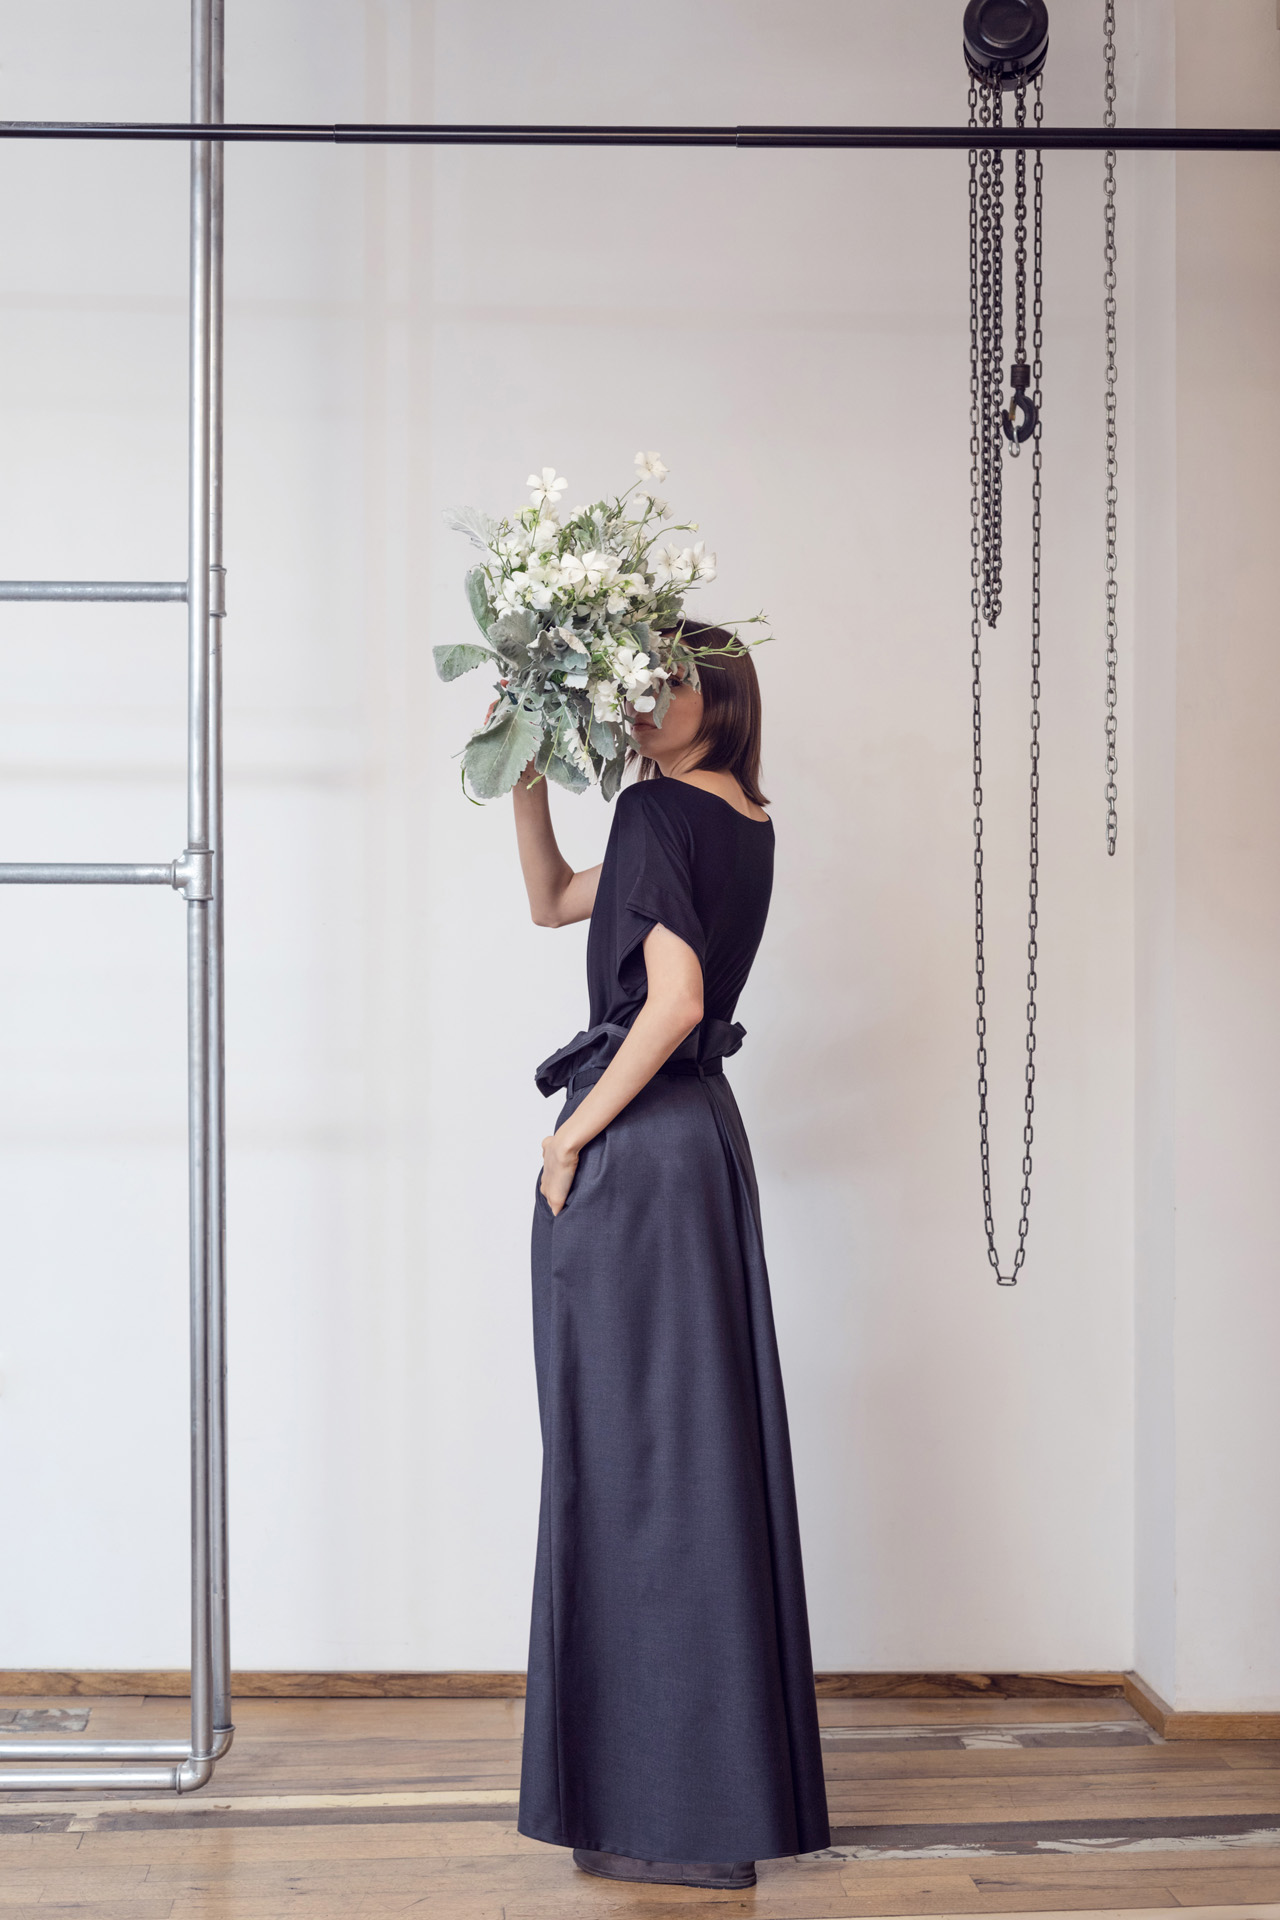 Lara Khoury | LK Stripped | Capsule 1-2019 | 3- Soft Black Jersey Top and Voluminous Dark Gray Wool Pants 2.jpg